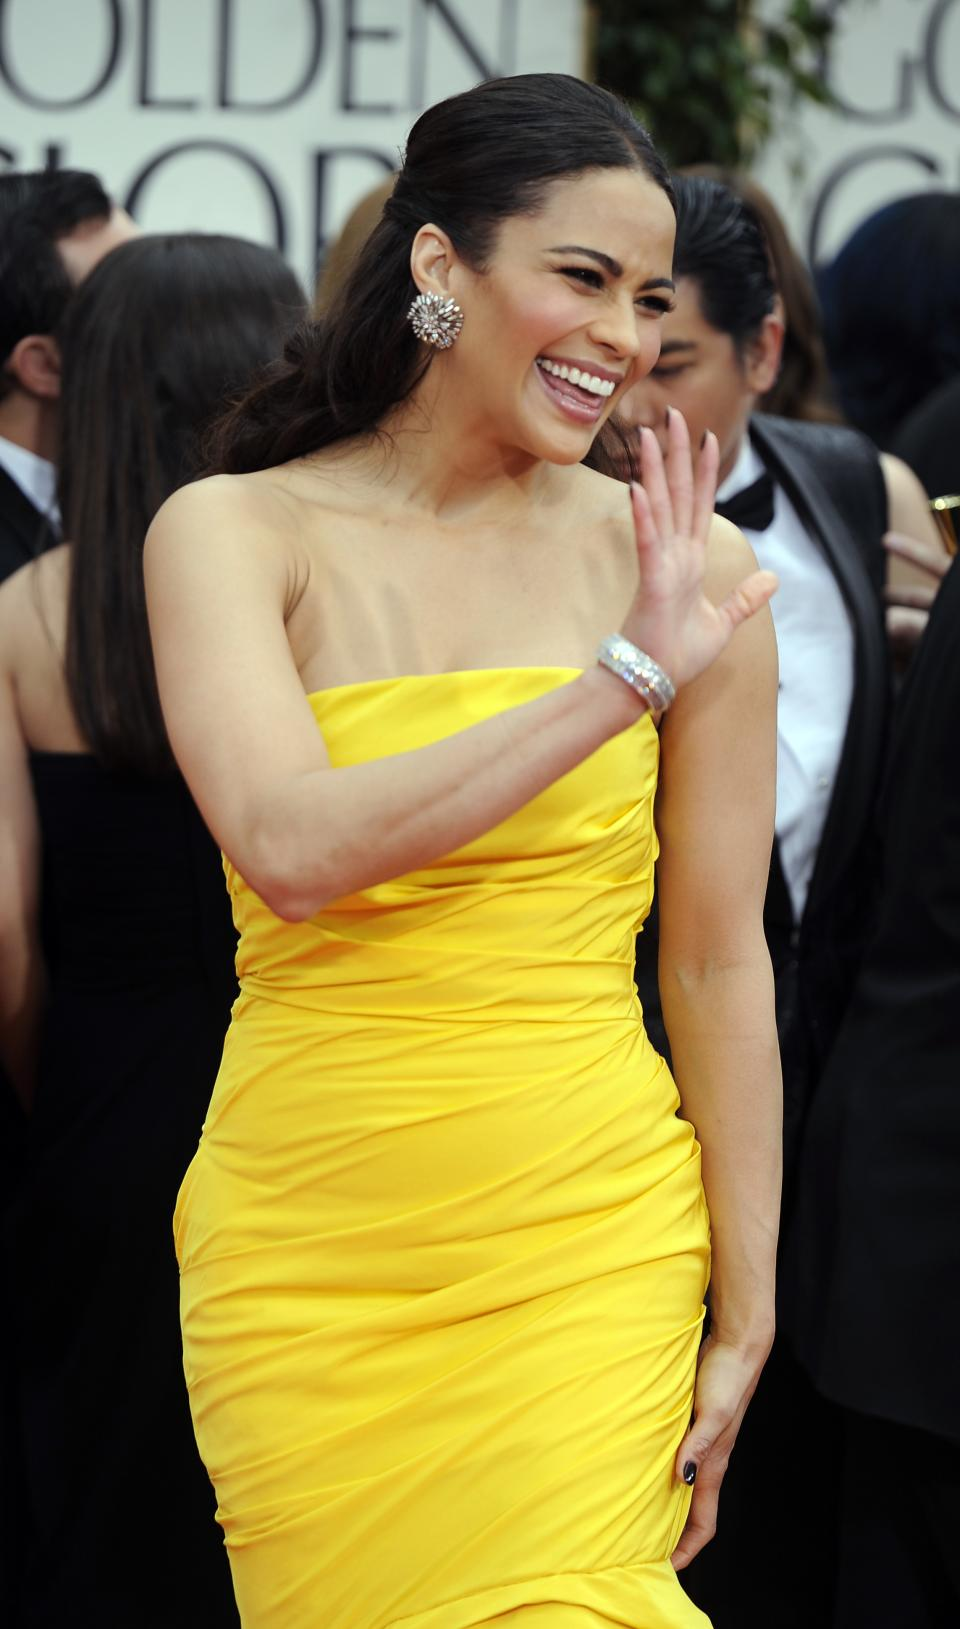 Paula Patton arrives at the 69th Annual Golden Globe Awards Sunday, Jan. 15, 2012, in Los Angeles. (AP Photo/Chris Pizzello)